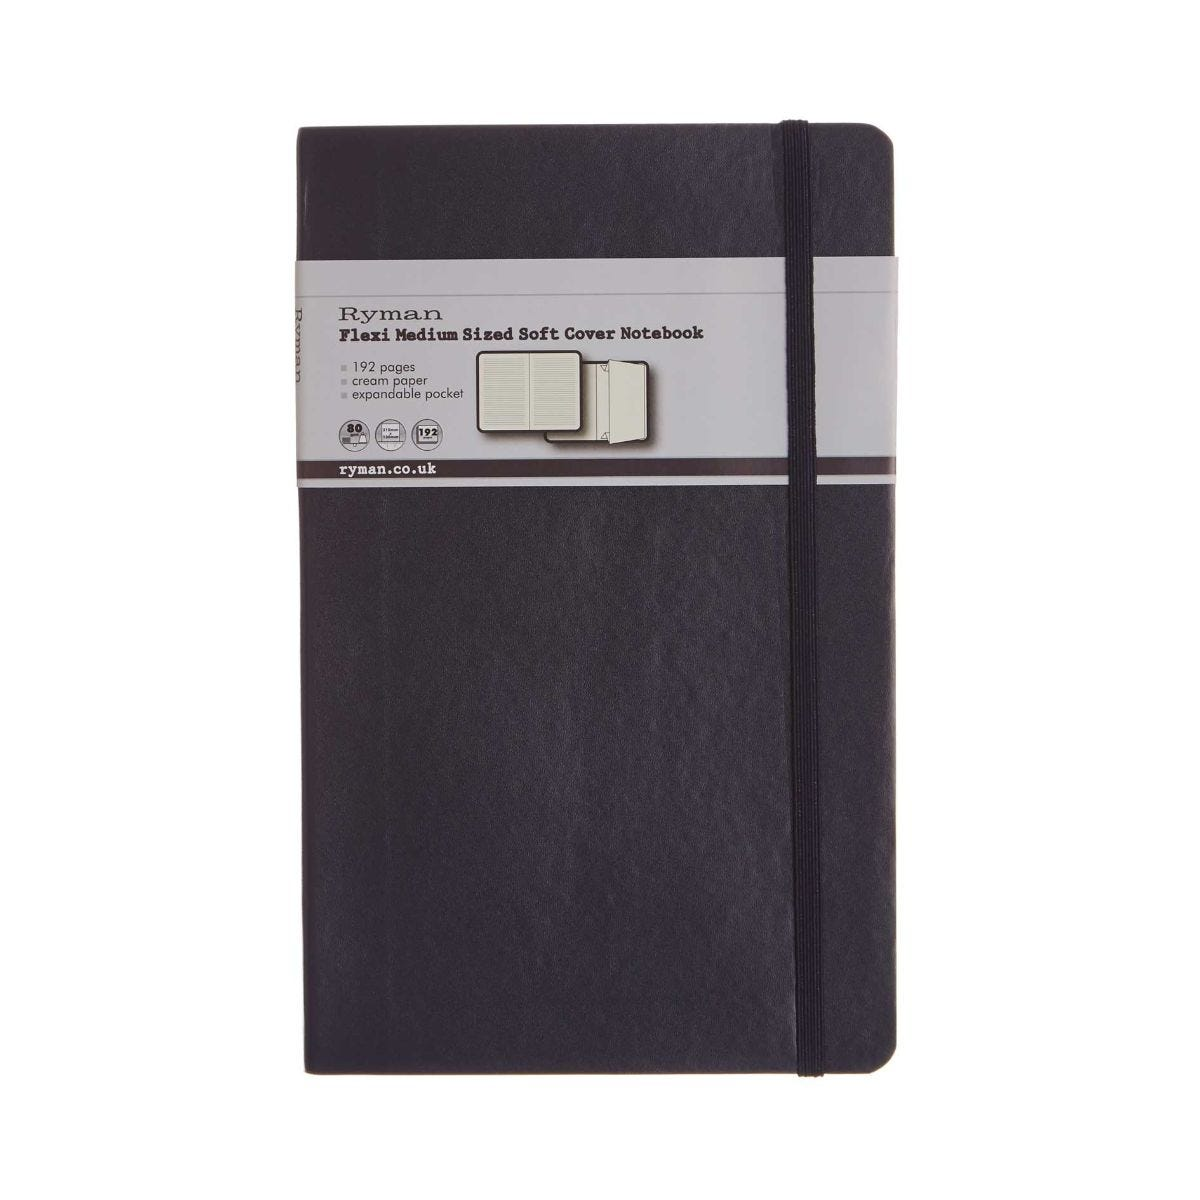 Ryman Flexi Soft Cover Notebook Medium 192 Pages, Navy